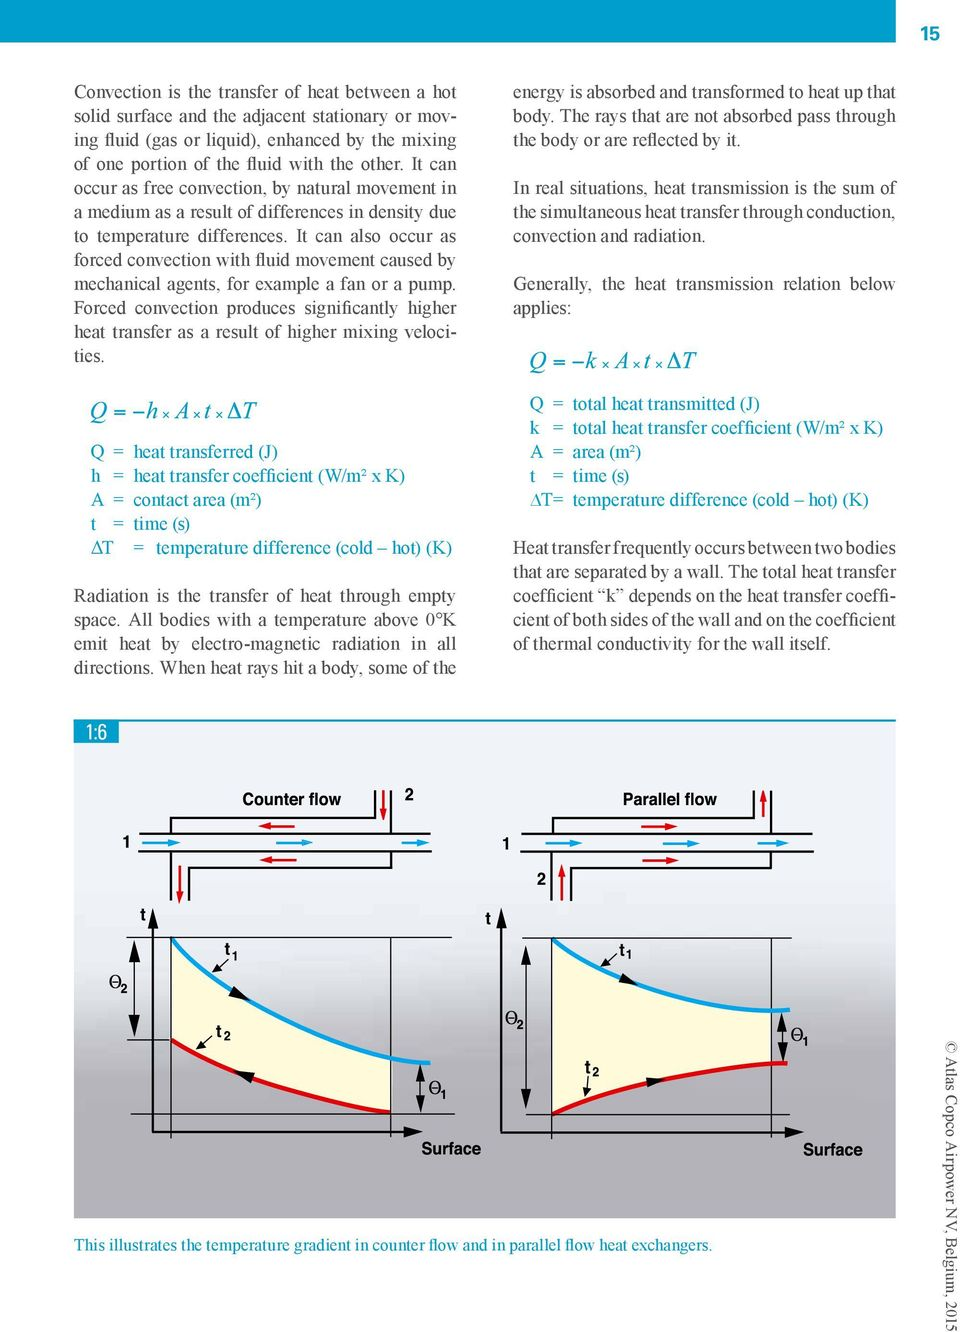 Atlas Copco Compressed Air Manual 8 Th Edition Pdf Alternator Wiring Diagram It Can Also Occur As Forced Convection With Fluid Movement Caused By Mechanical Agents For